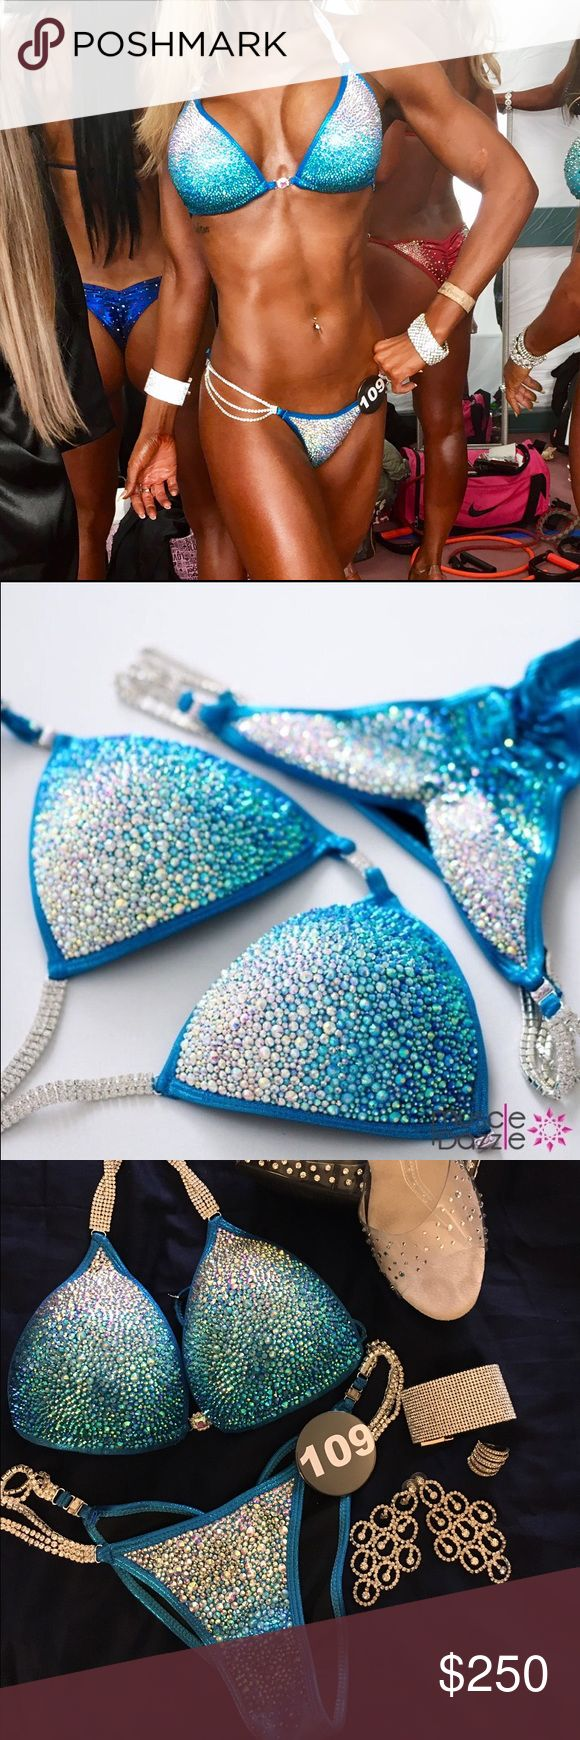 Muscle dazzle stage bikini Like BRAND NEW**** muscle dazzle NPC BIKINI! It's a small in top and bottoms. Only wore once and professionally cleaned. Comes in box. Please message me for any questions muscle dazzle Other